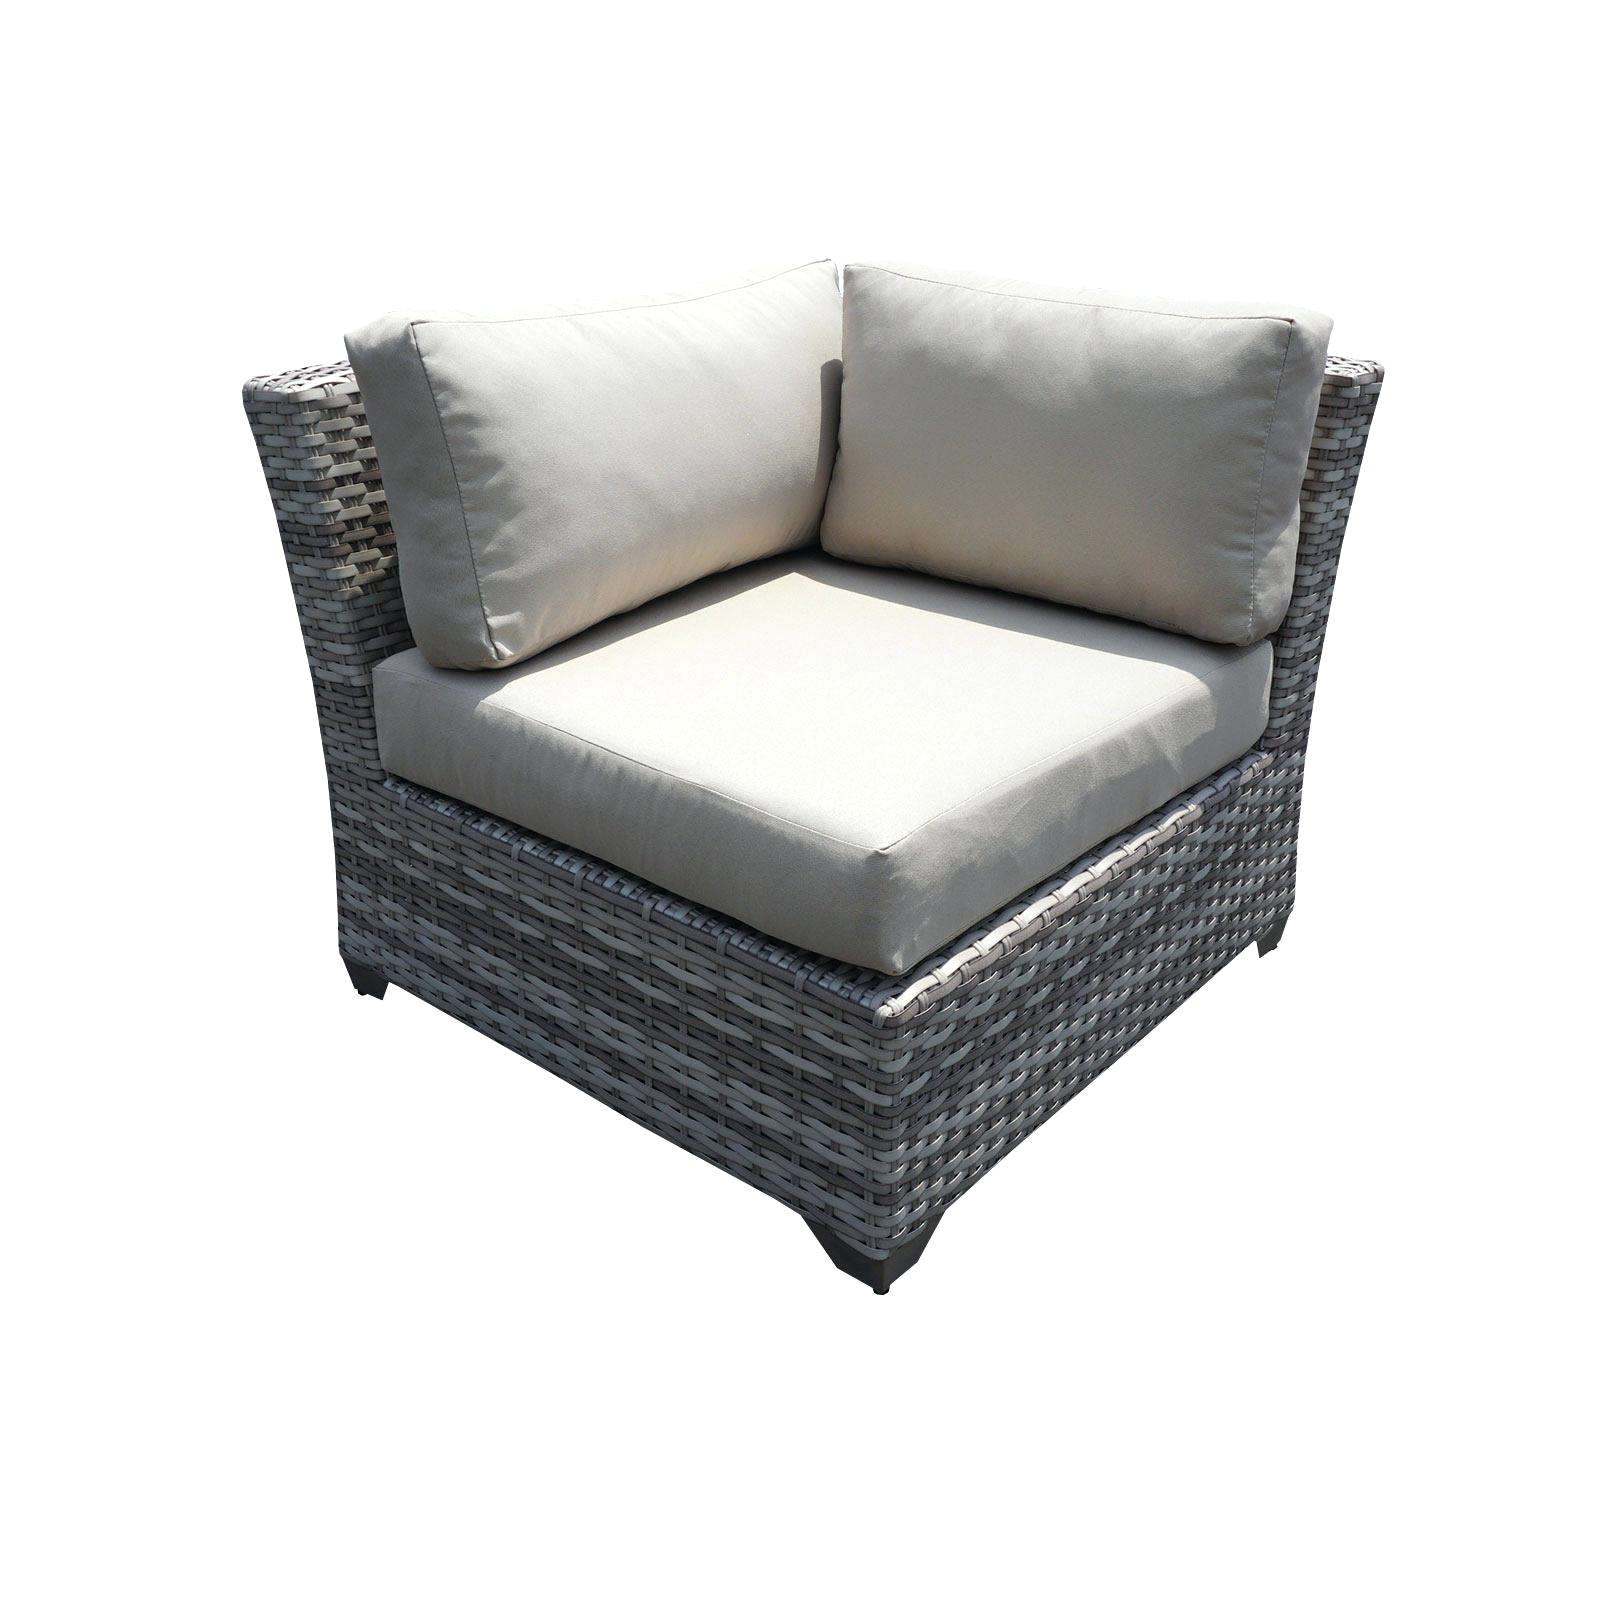 Folding Lawn Chair Fabric Replacement Chair Wicker Outdoor sofa 0d Patio Chairs Sale Replacement